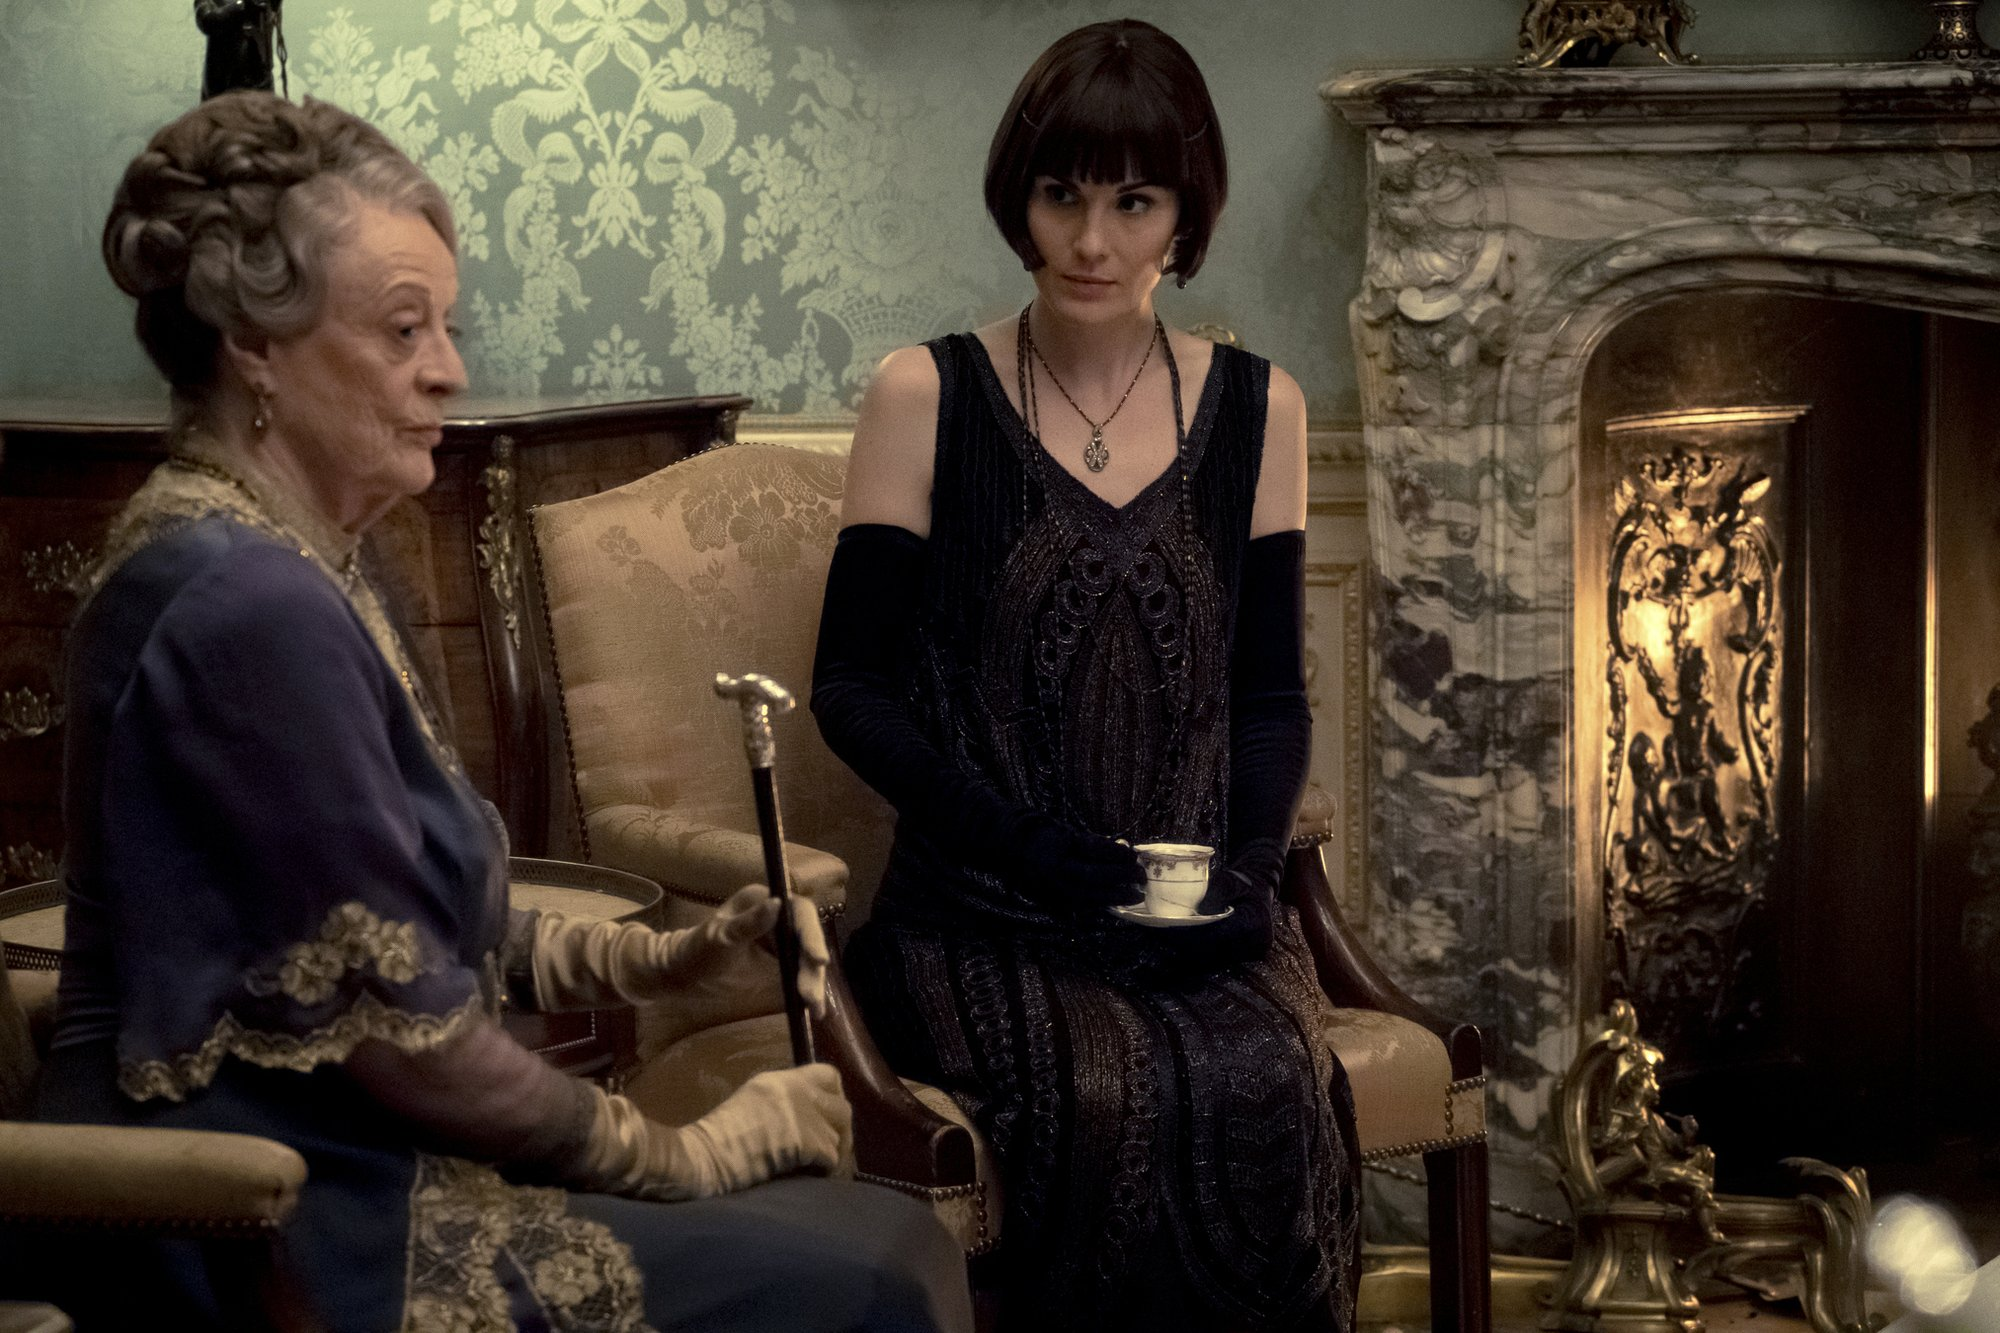 Review: 'Downton Abbey' film is stately but too safe